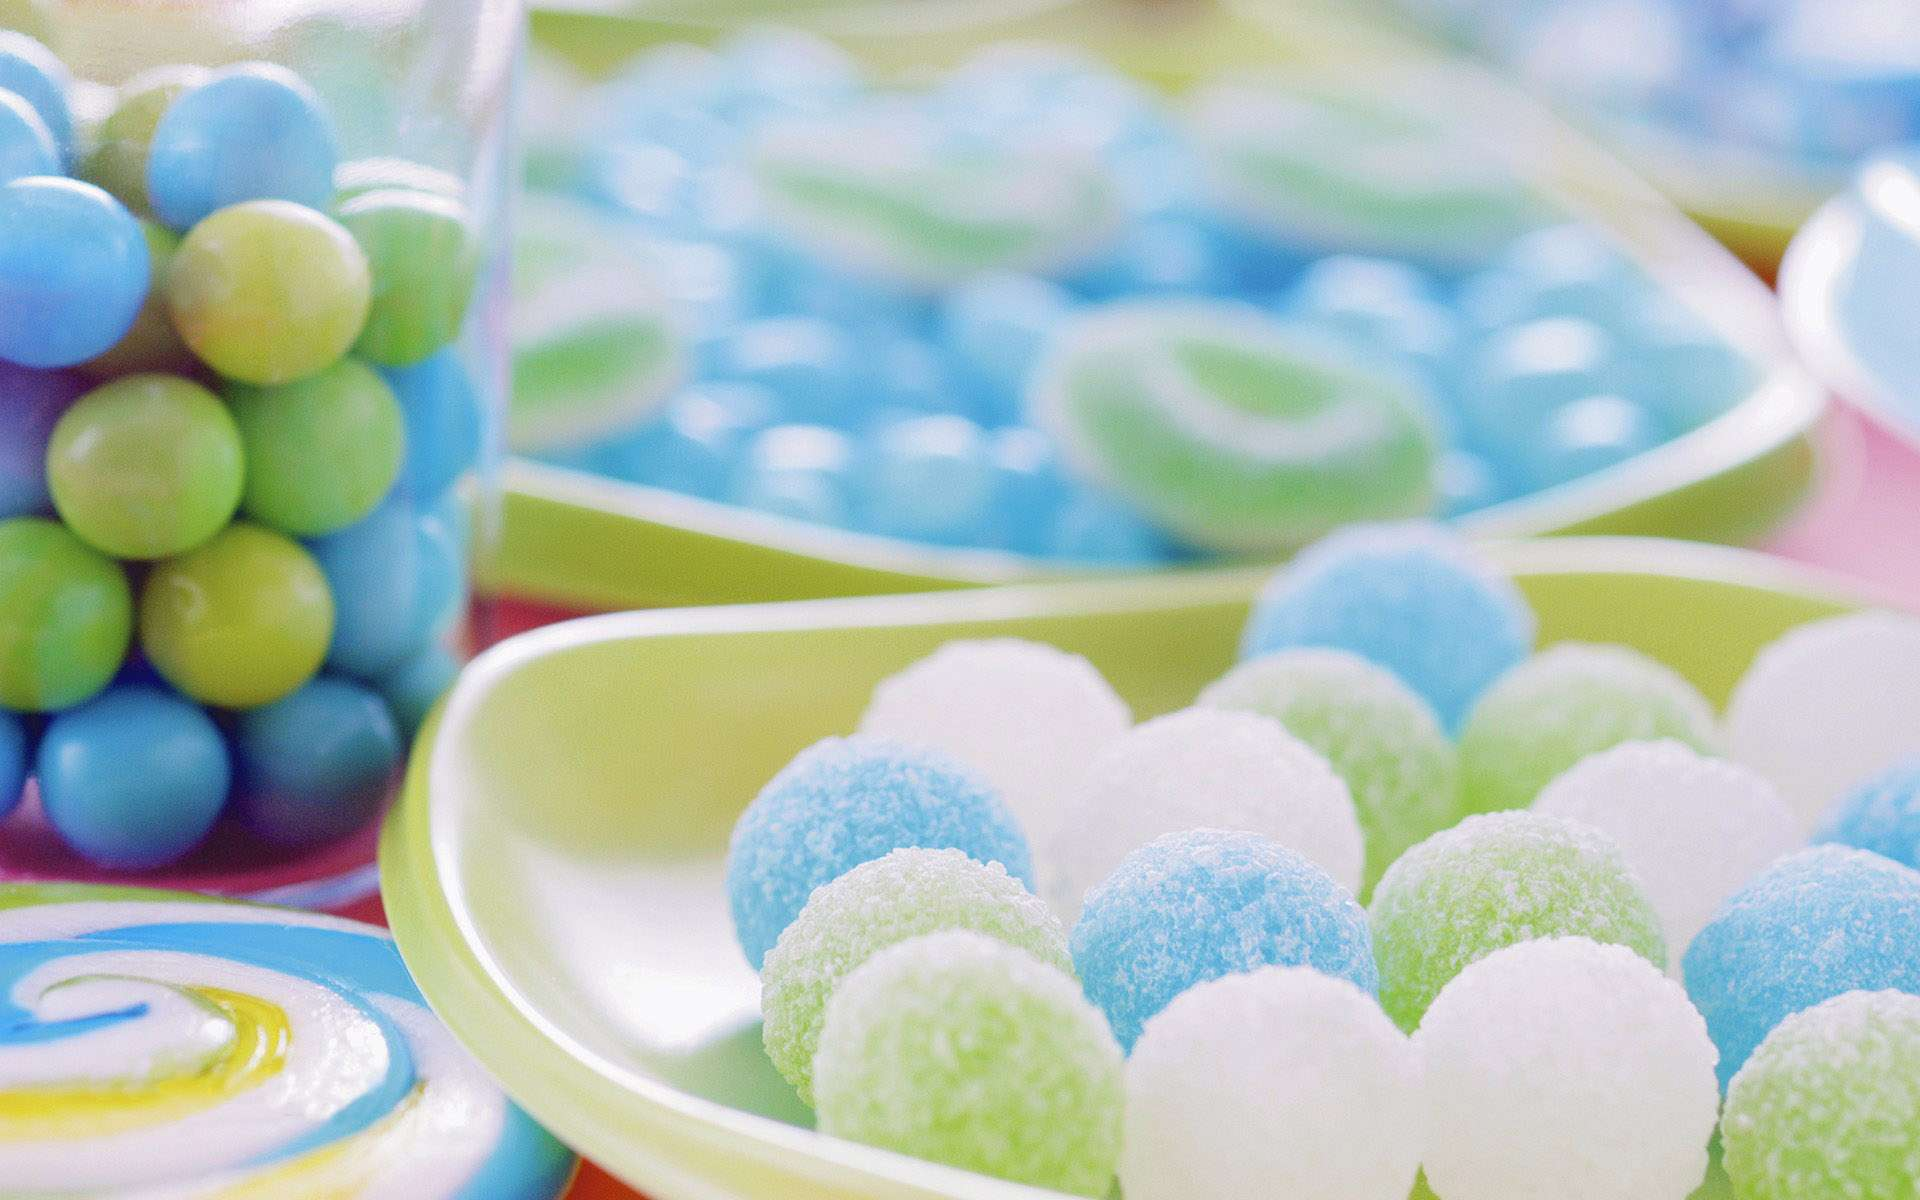 Cool Candy Cakes - wallpaper.